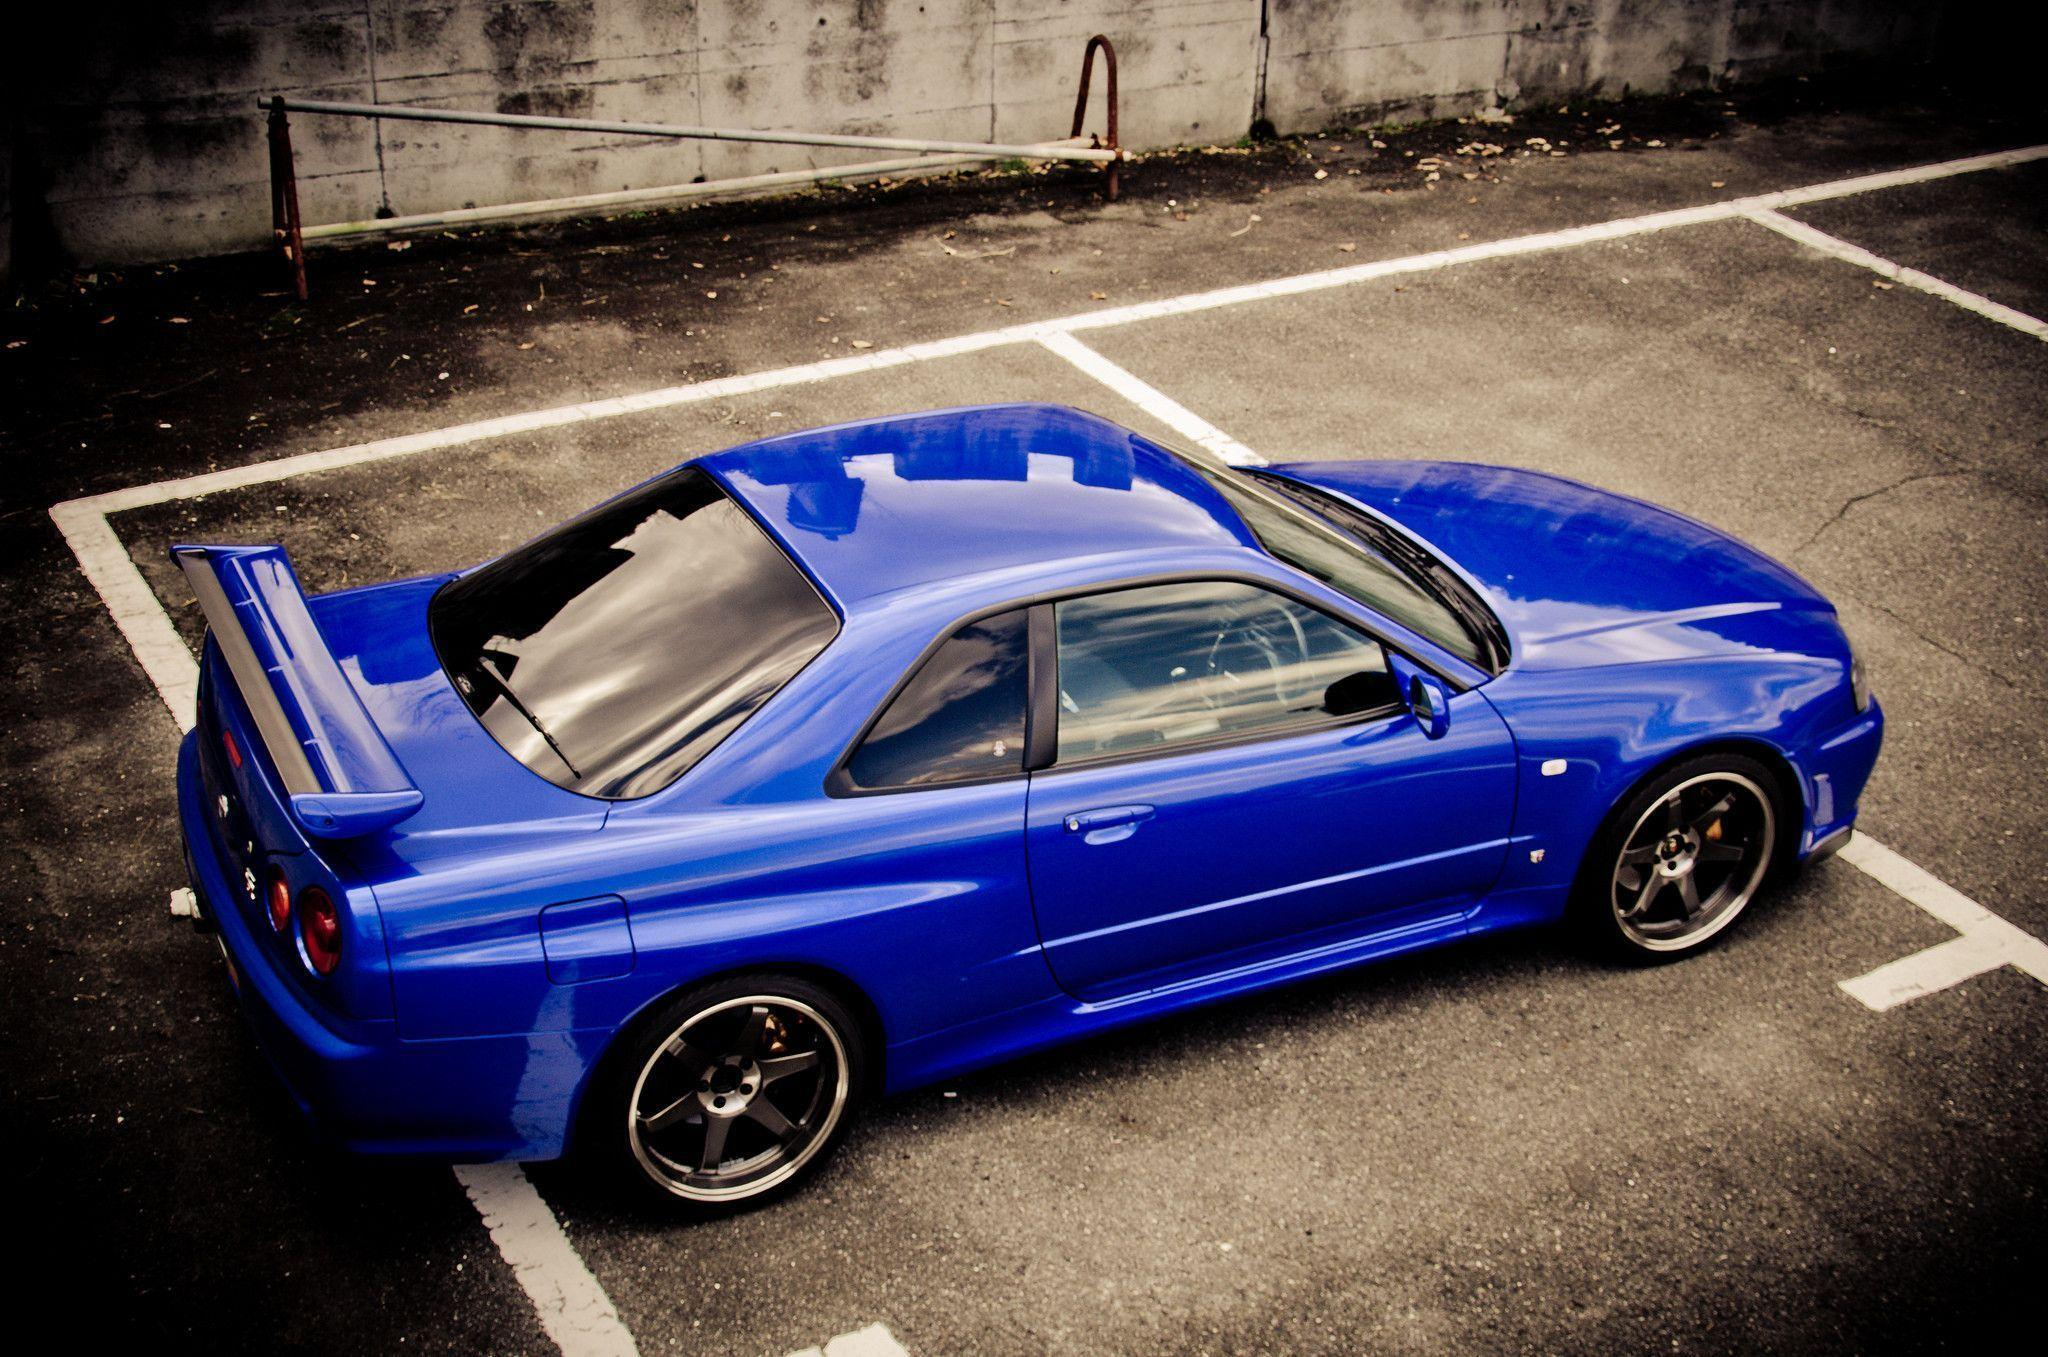 59 Nissan Skyline Wallpapers